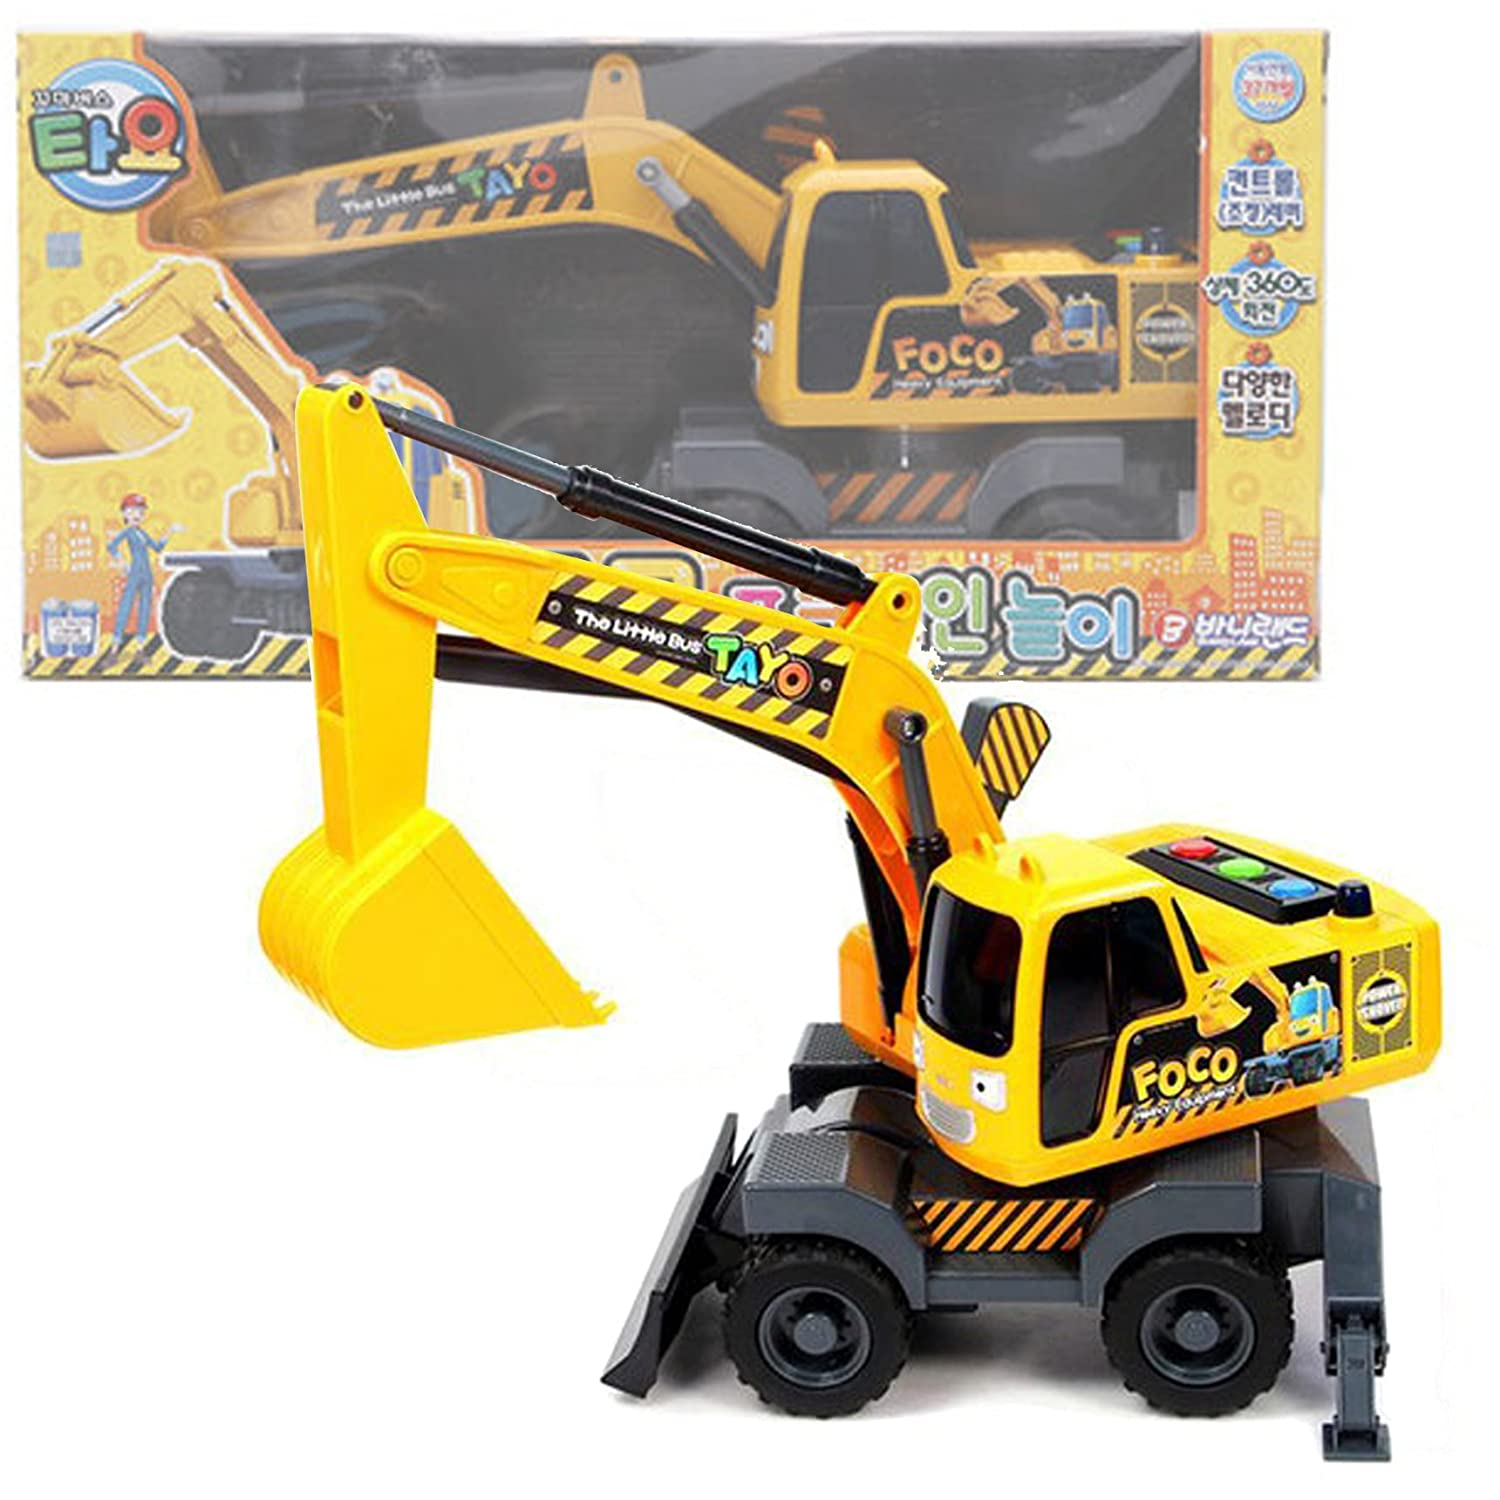 The Little Bus Tayo Heavy Equipment Freind FOCO   POCO Excavator Play Set Toy - Friction Power by Tayo